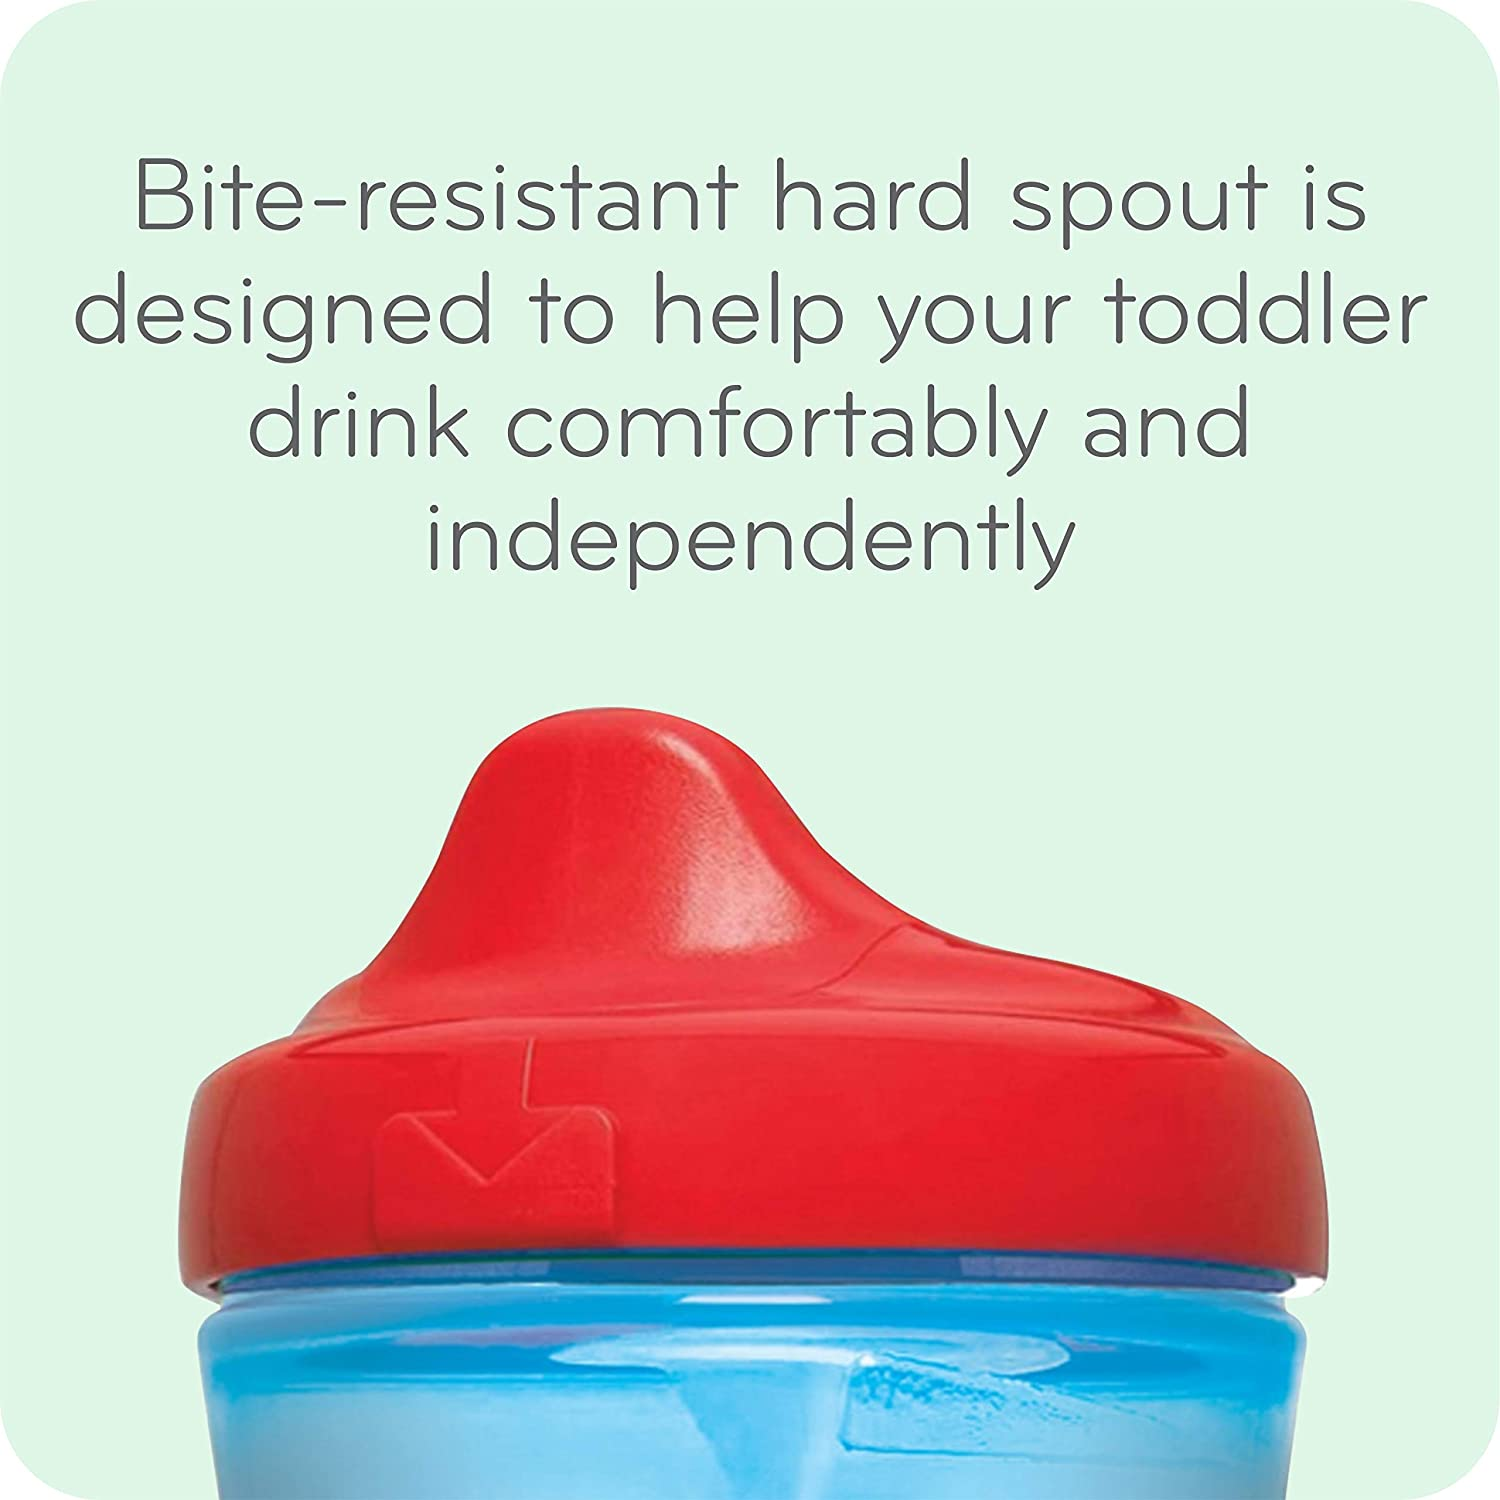 First Essentials by NUK™ 10oz Hard Spout Sippy Cup Product Image 7 of 9